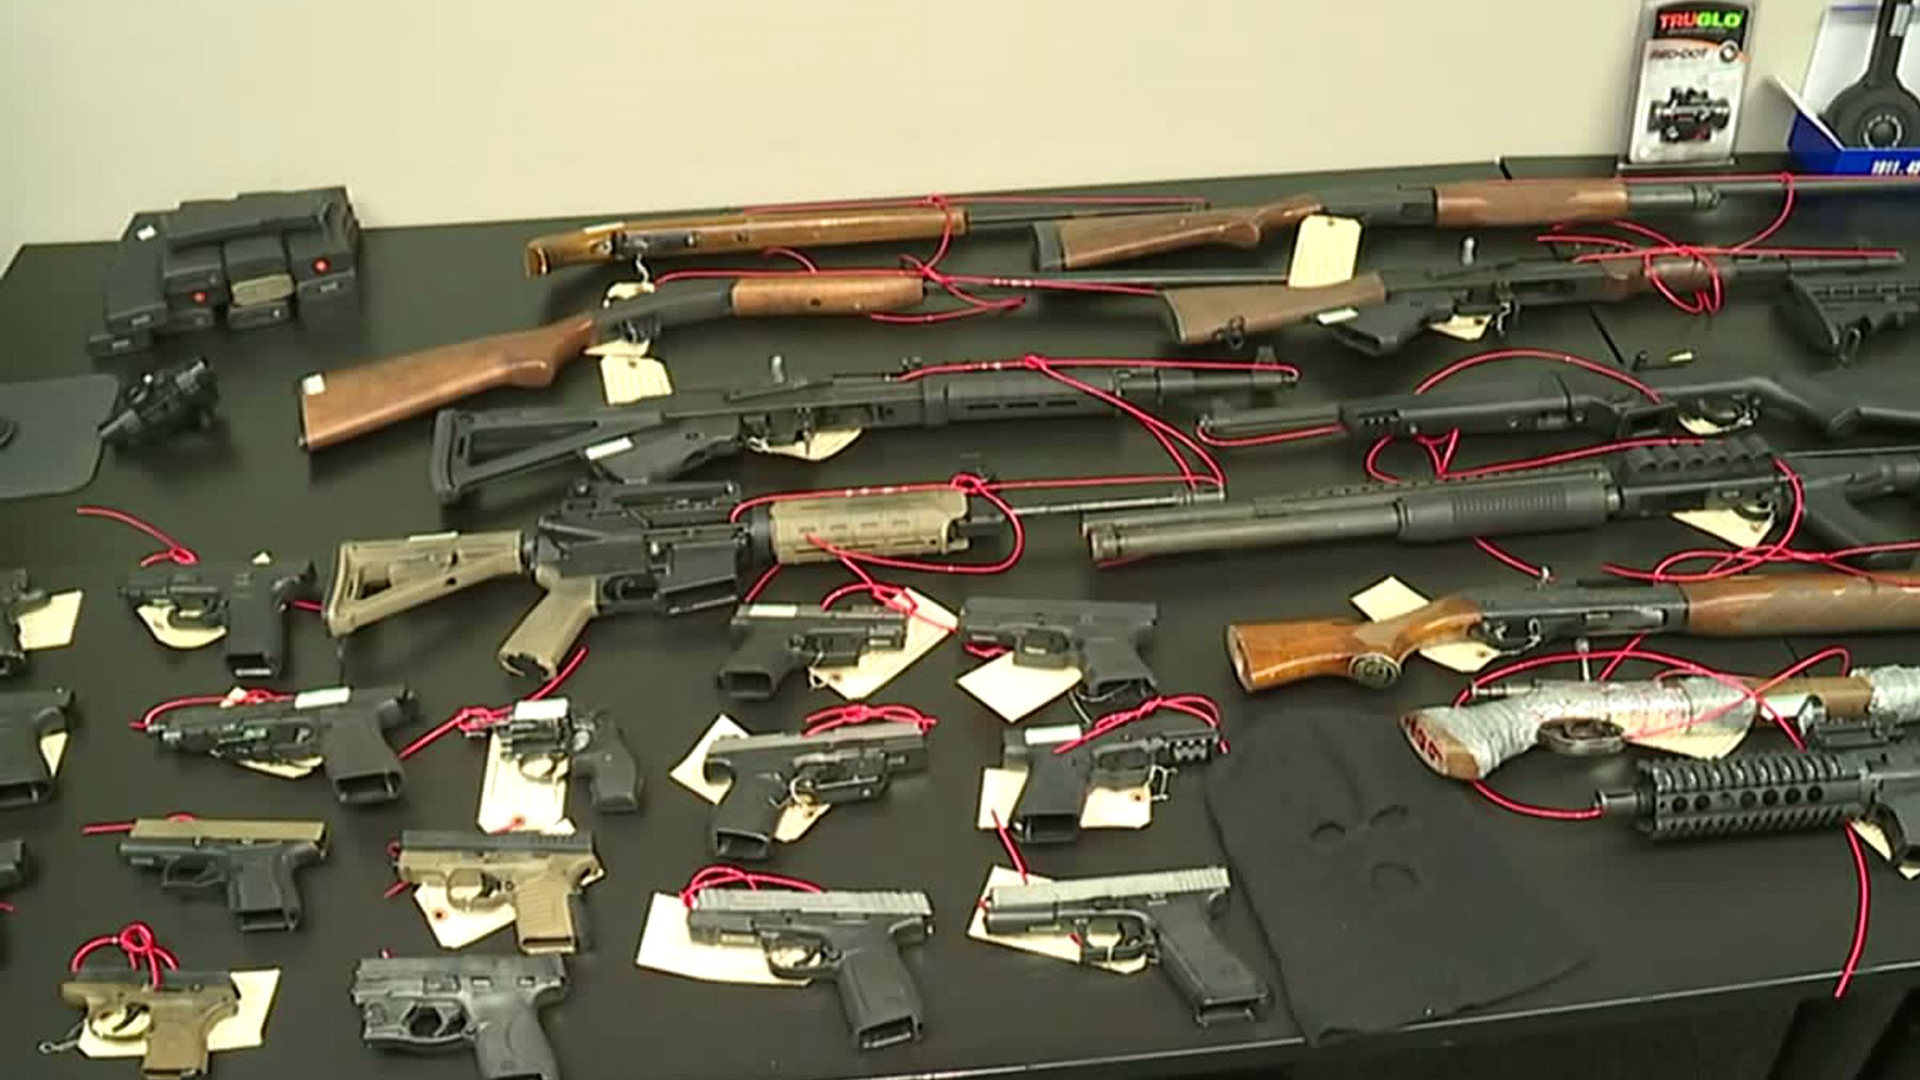 Some of the confiscated firearms in a gang takedown in Stockton are seen at a news conference on Nov. 19, 2019. (Credit: KTXL)